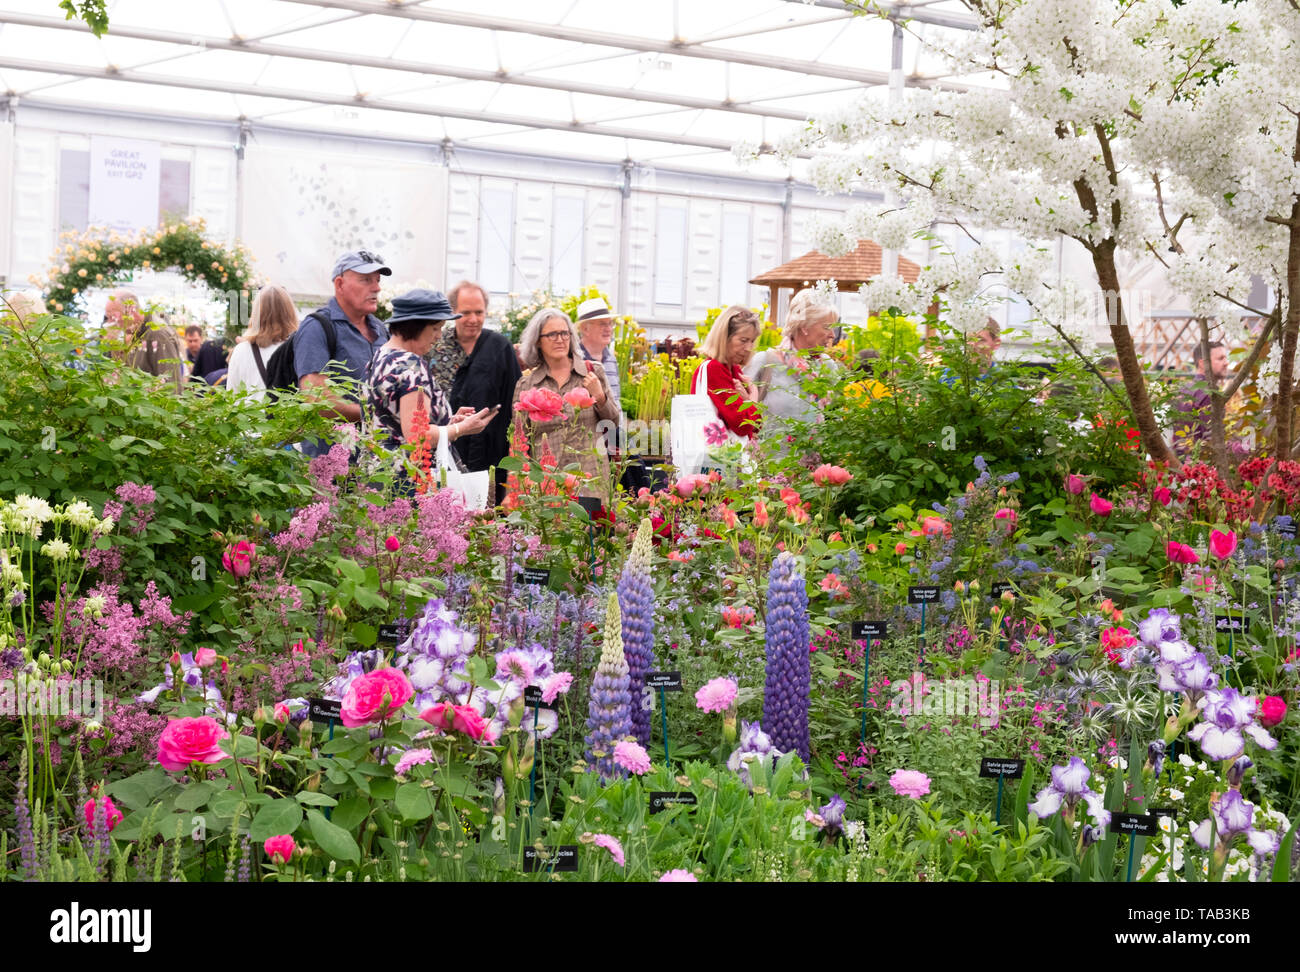 Visitors at the RHS Chelsea Flower Show 2019 around the Hillier Nurseries display in the Great Pavilion. London, UK Stock Photo